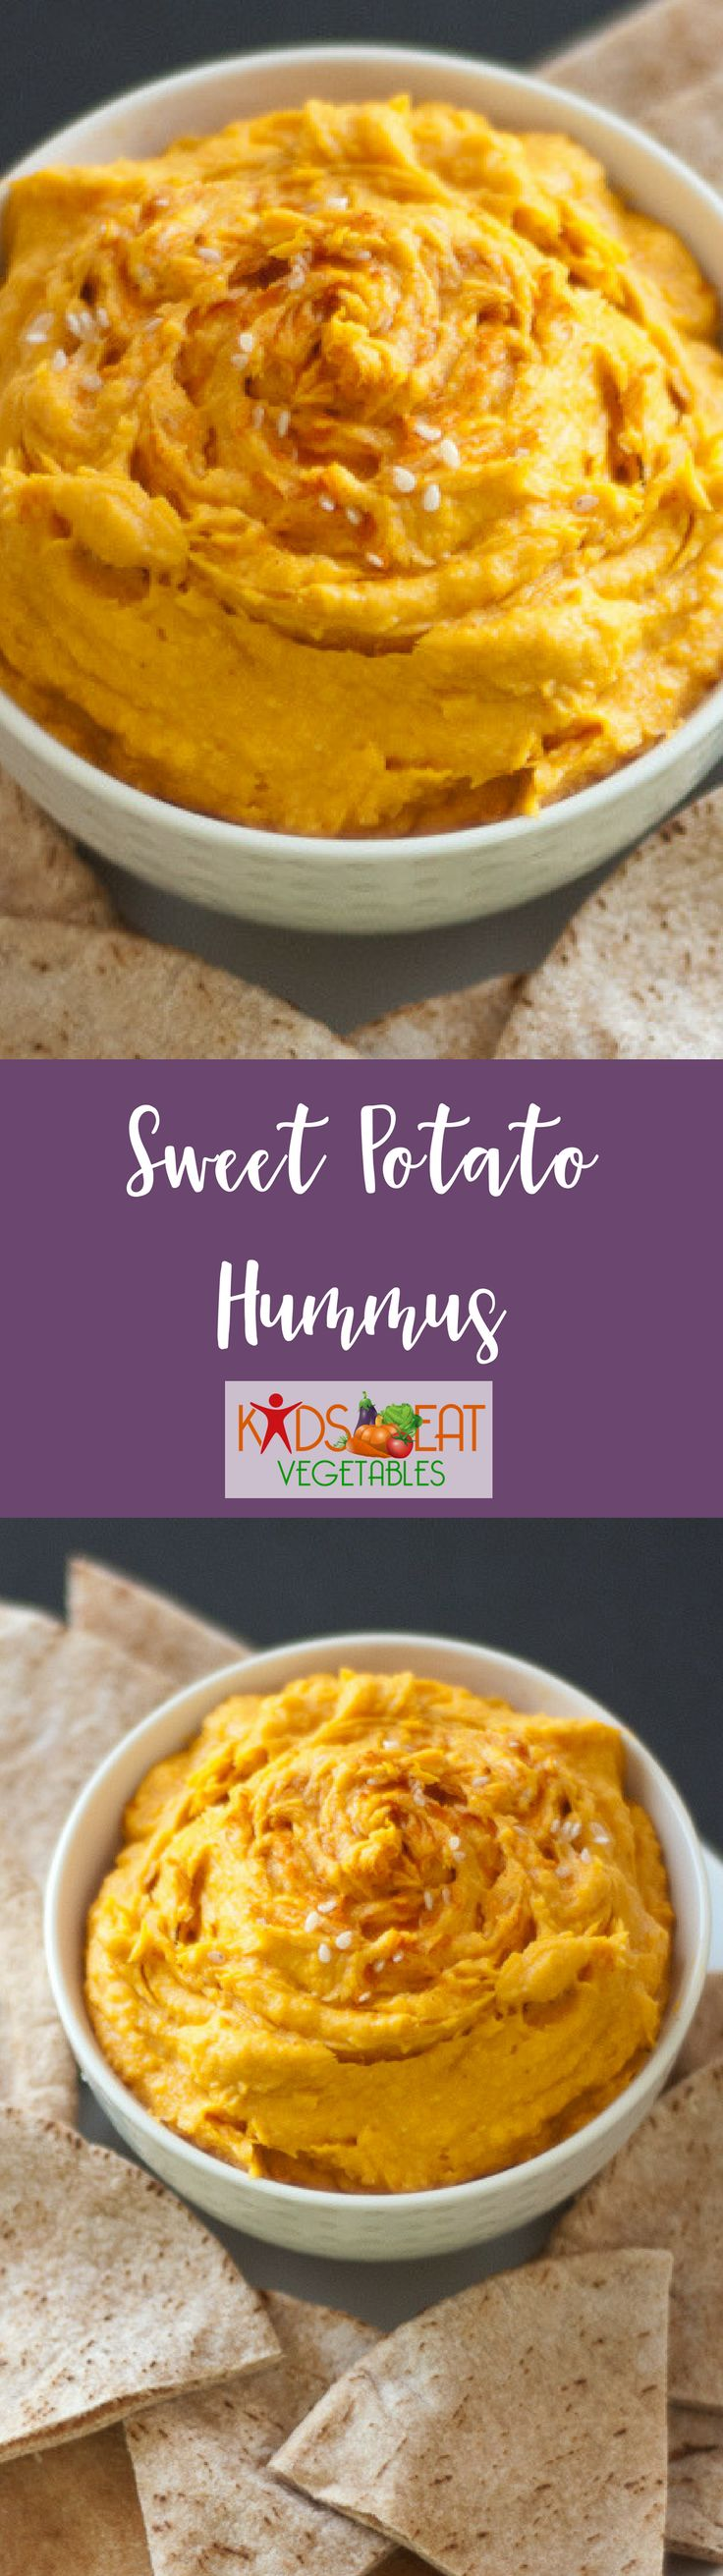 This easy hummus recipe pairs well with many foods such as vegetables, bread, pita wedges and chips. It is great for an afternoon snack, as a hearty side dish or as an appetizer.  The attractive deep orange color is a nice addition to a full course meal t